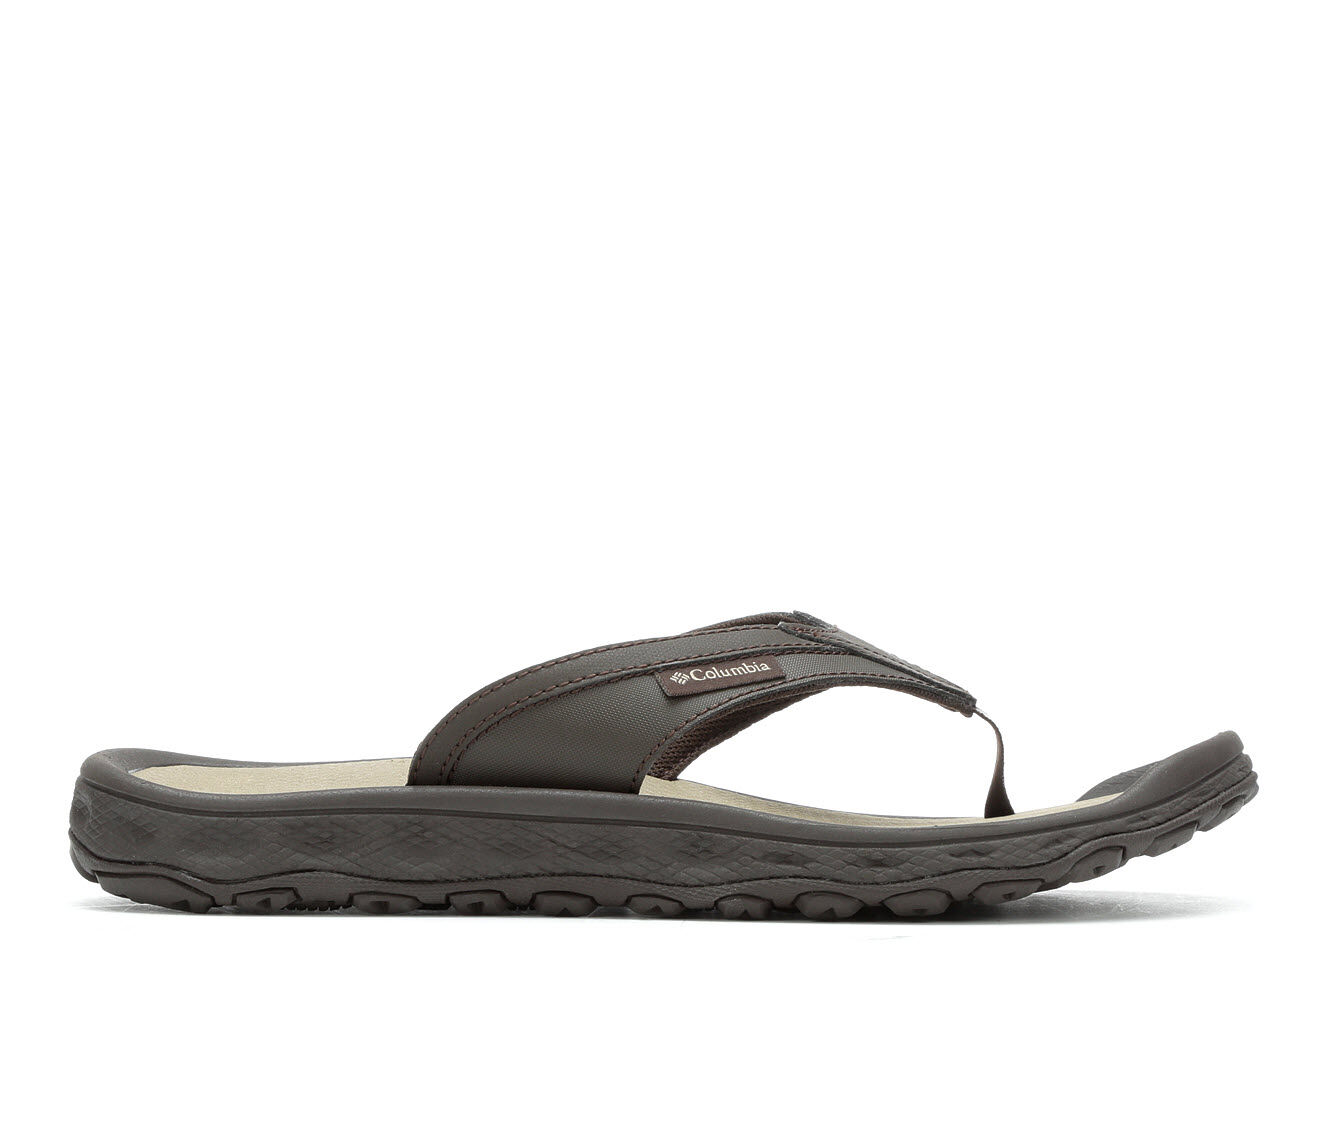 Men's Columbia Buxton Flip-Flops Cordo/Pebble